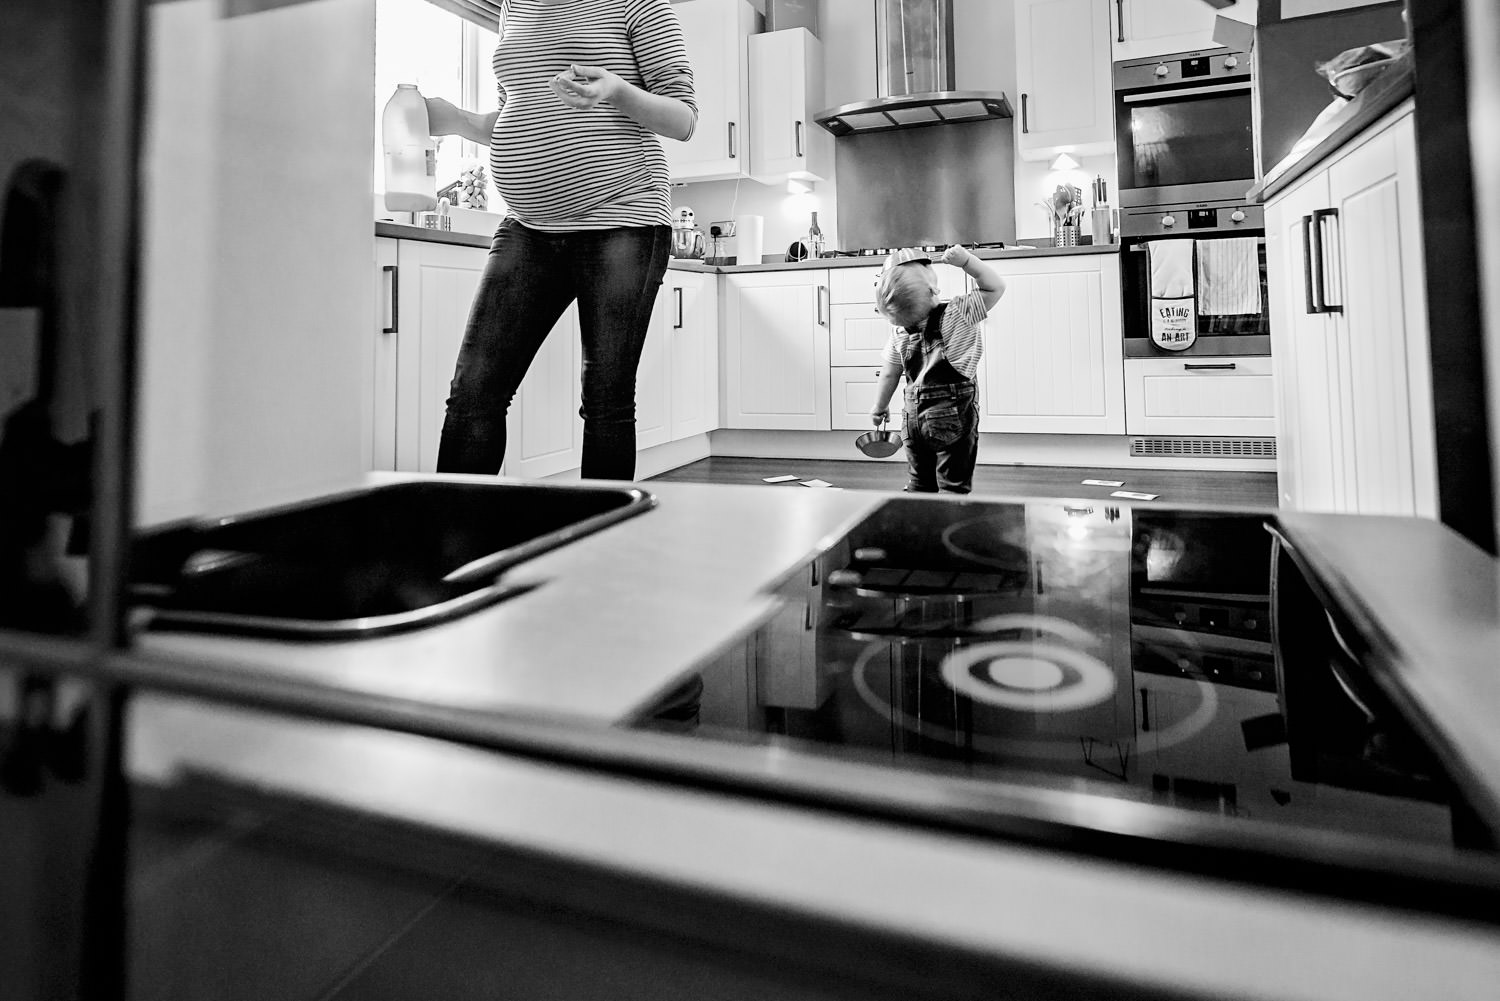 Boy toddler standing in the kitchen holding a play frying pan over his face